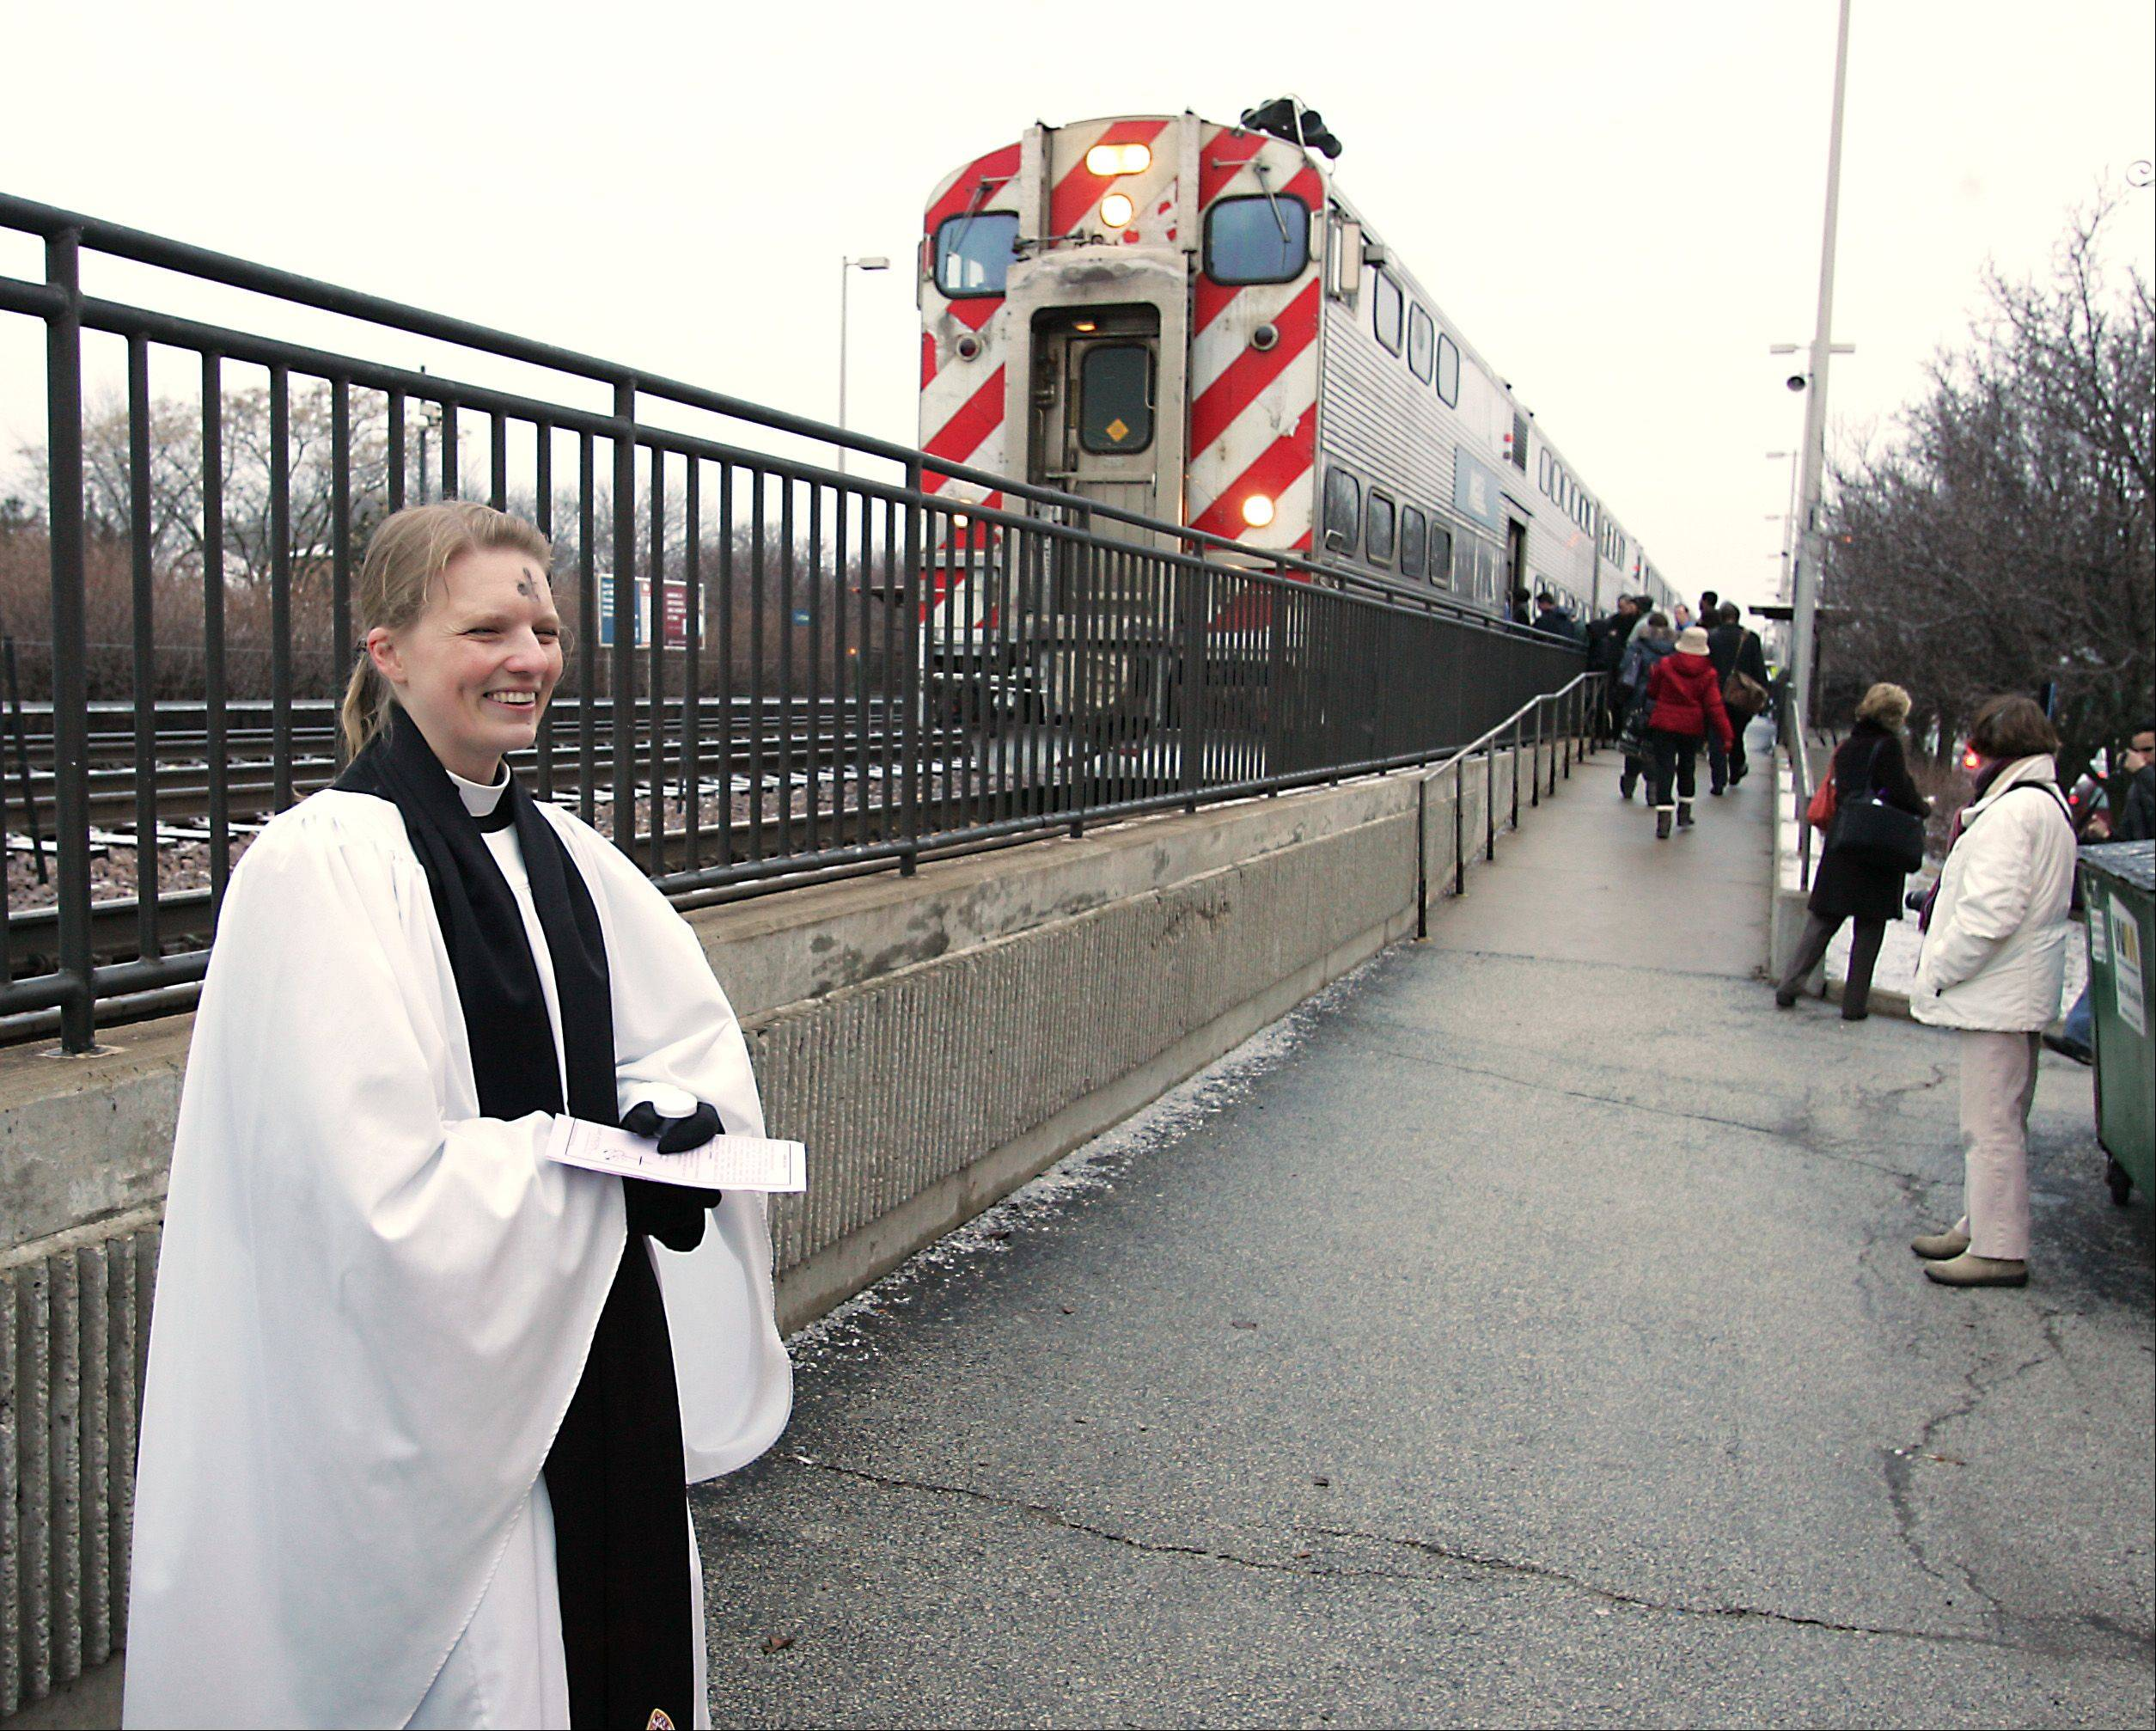 The Rev. Emily Mellott, pastor of Calvary Episcopal Church in Lombard, has become something of a national leader for a movement in the Episcopal Church to offer Ashes to Go for busy people at locations such as train stations and coffee shops. Her team dispensed ashes Wednesday morning for the third year in a row and reached 107 people.